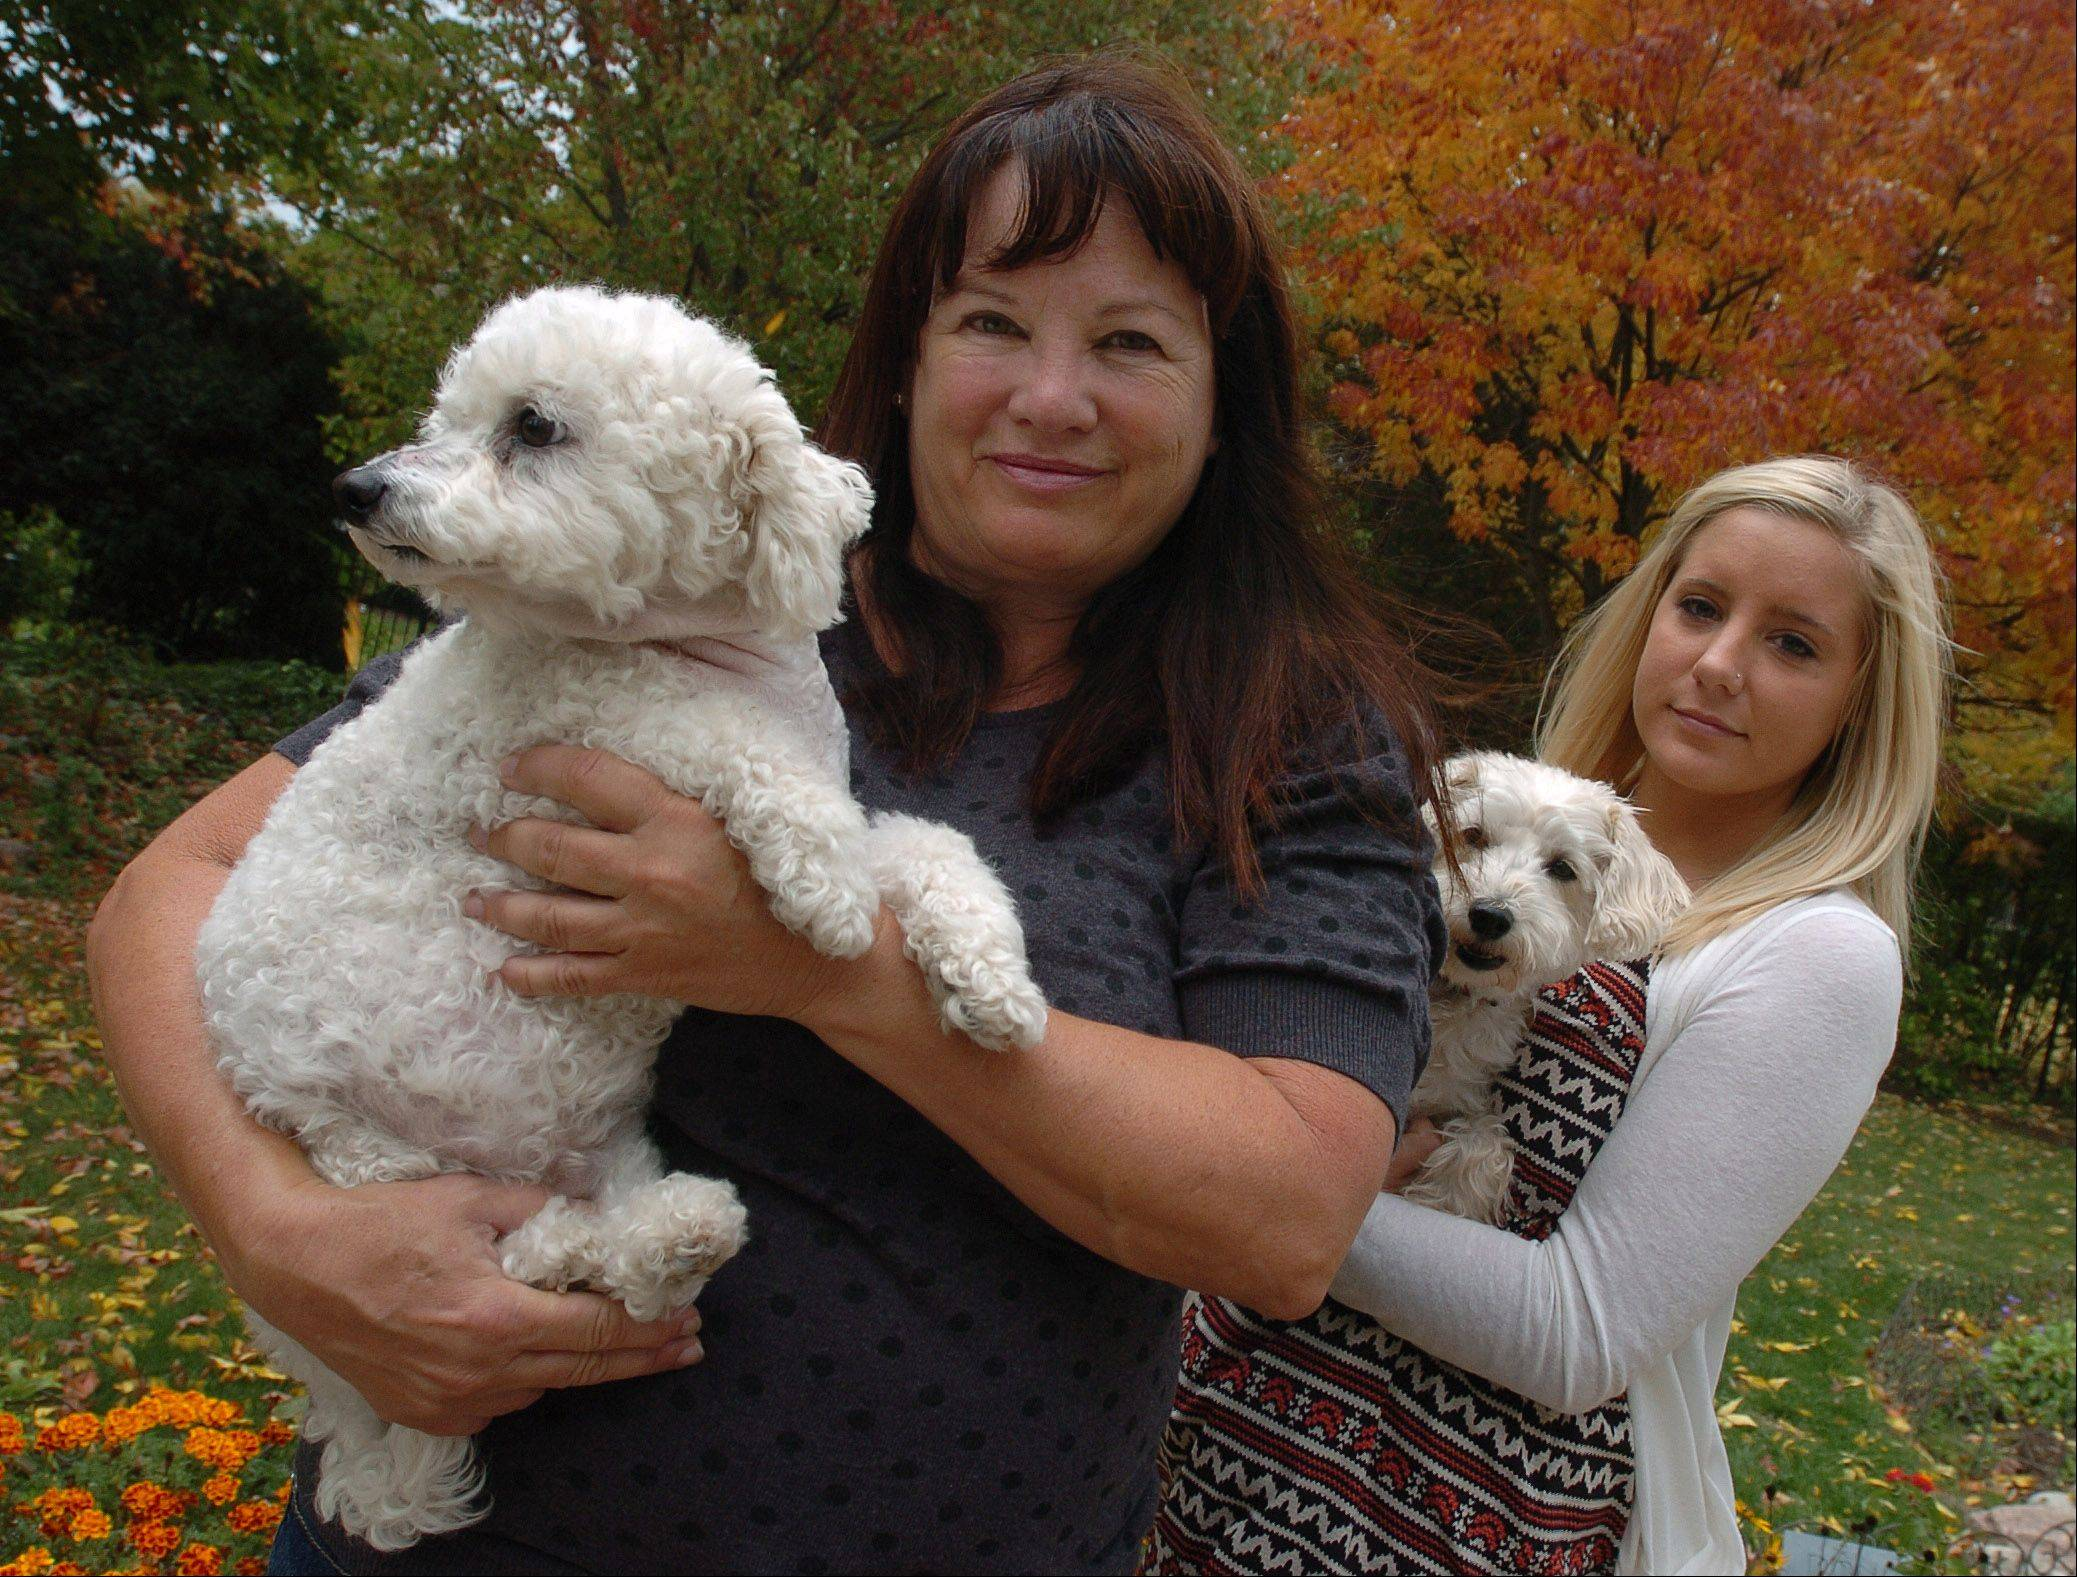 Linda Arigi of Wheaton holds her dog Evie, who recently was attacked by a coyote in her backyard and suffered several puncture wounds. Evie was saved by the quick response of dog sitter Megan Wilt, holding the family's other dog, Pippin.